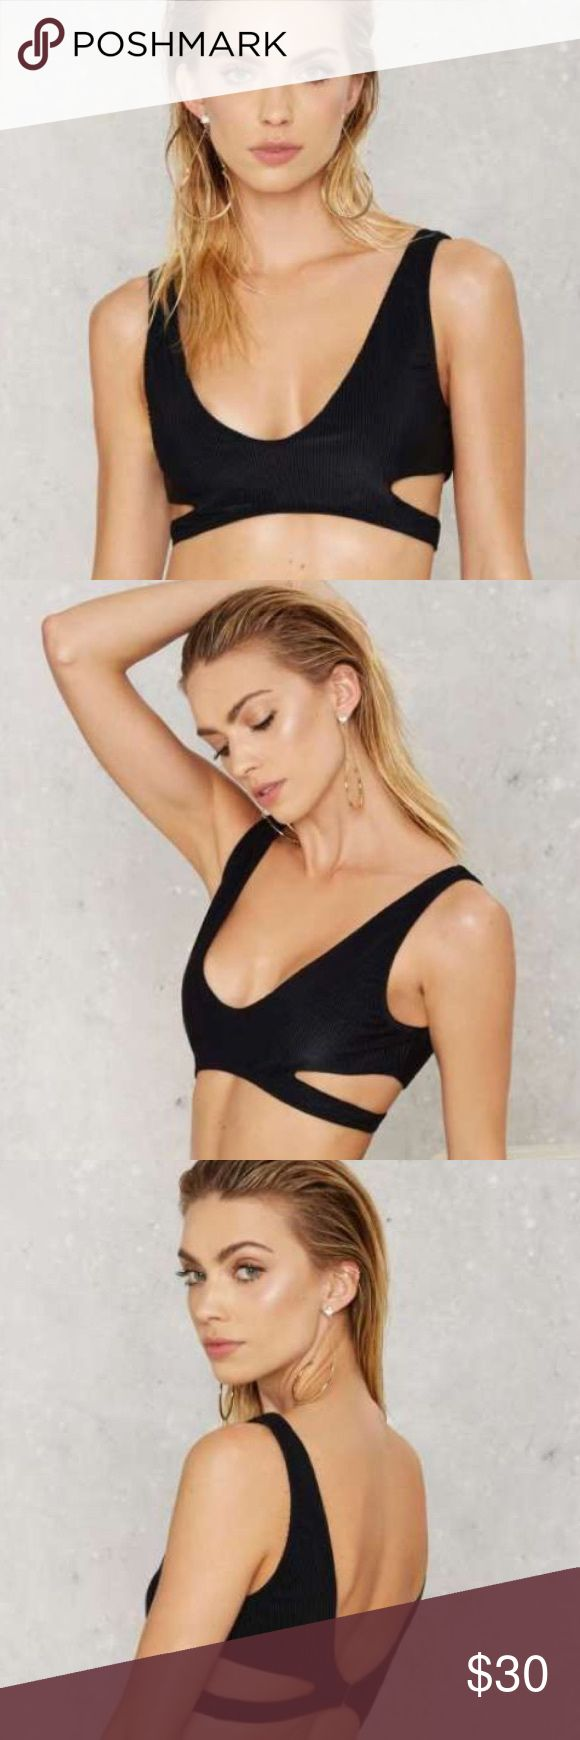 HP 10/22 Nasty Gal Cut Out Bikini Top SZ XS Gorgeous Nasty Gal black cut out bikini top! Worn ONE TIME! This black bikini top has a plunging neckline, open back design, cut-out detailing at sides lining at bust, and silver hook closure at back. SIZE XS. *Nylon/Spandex/Micronylon  *Runs true to size  *Hand wash cold  *Made in U.S.A. Nasty Gal Swim Bikinis